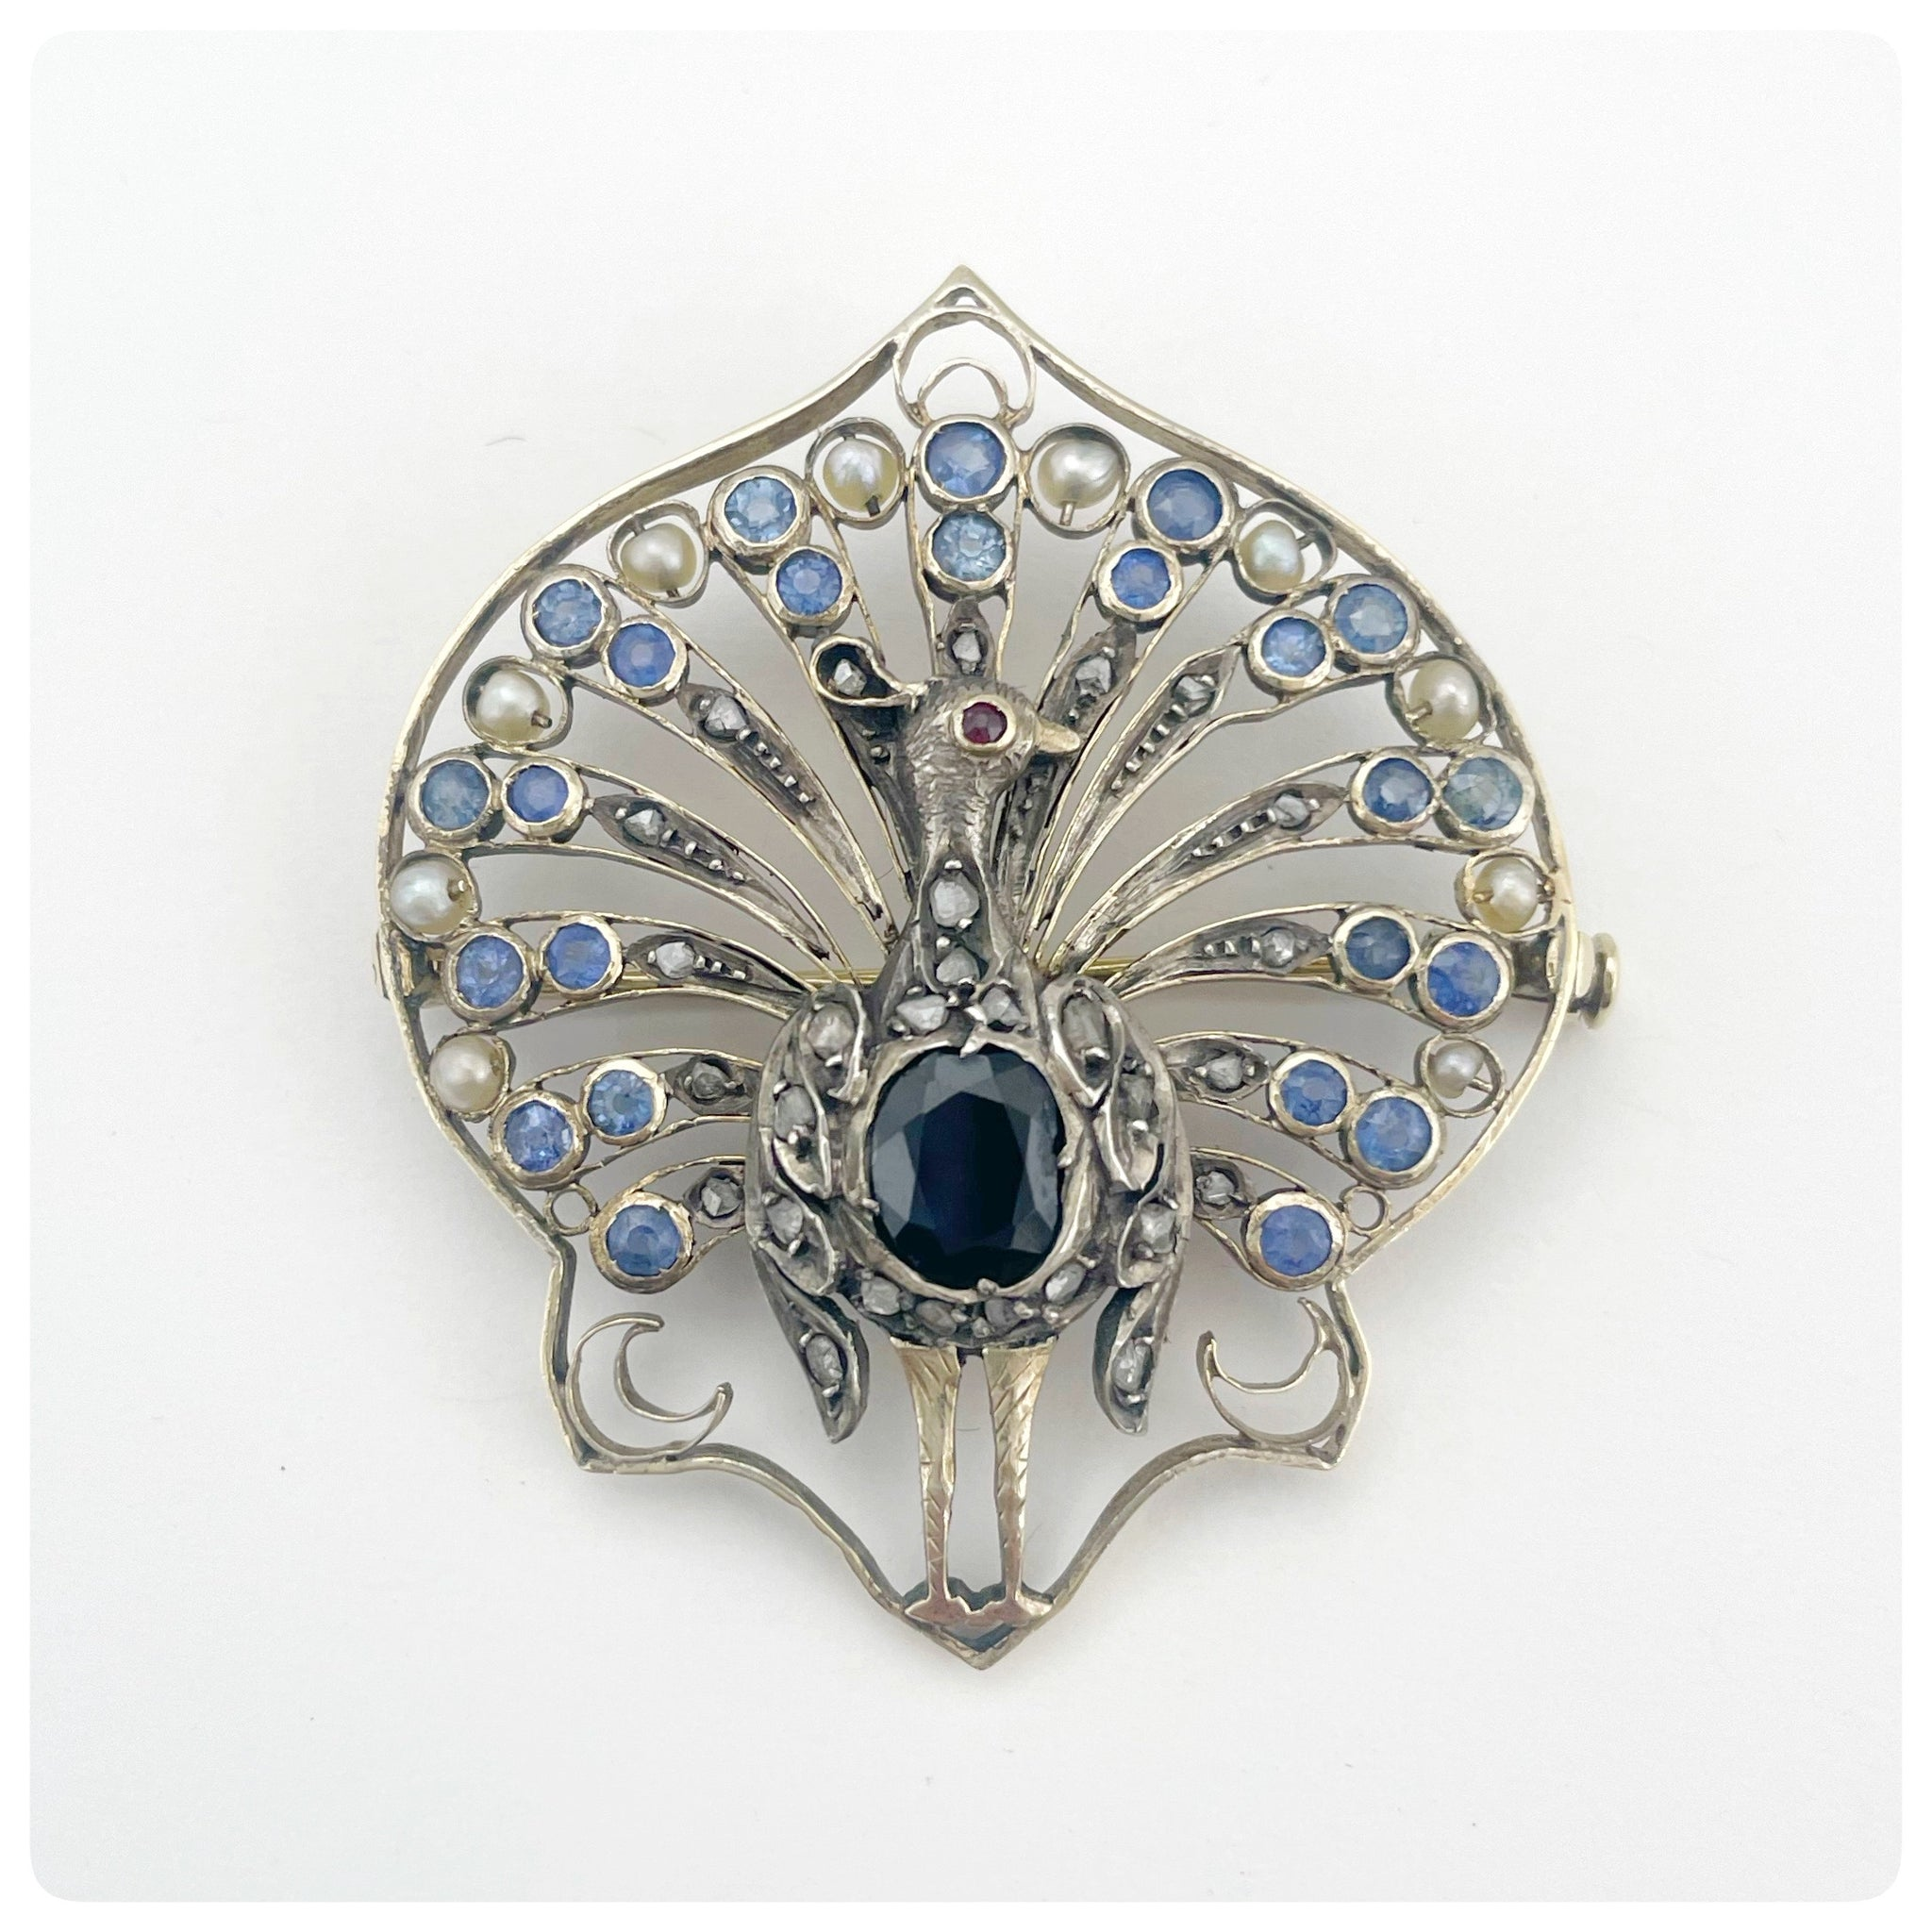 14KT Gold, Sapphire, Ruby, Pearl and Diamond Peacock Brooch, Poland, Circa 1885